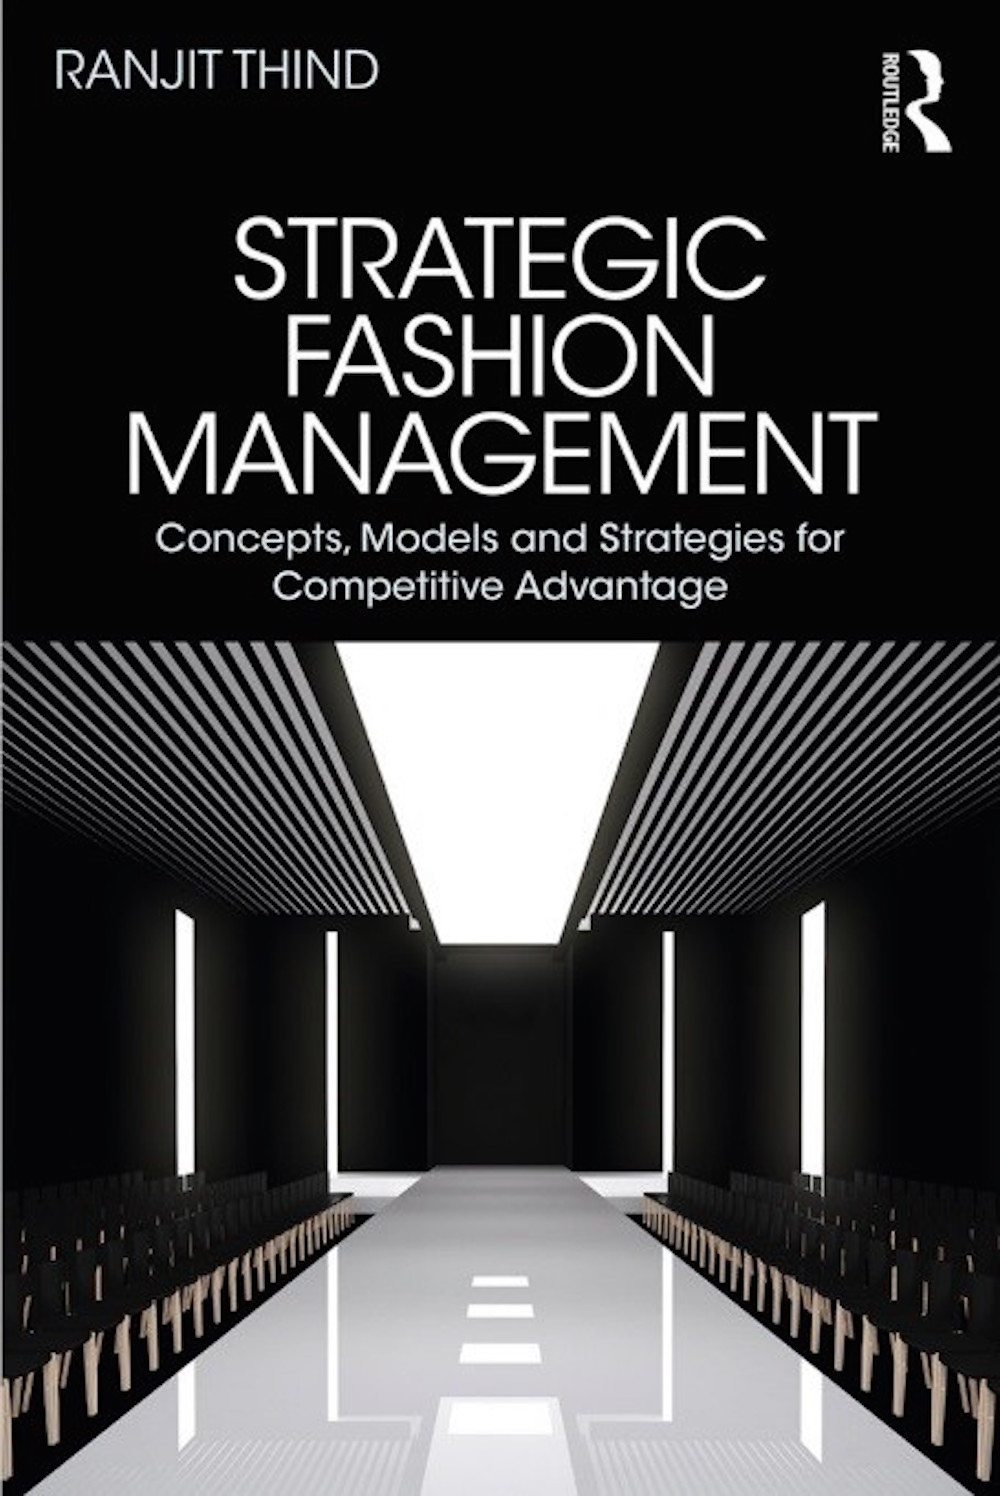 Strategic Fashion Management: Concepts, Models and Strategies for Competitive Advantage.